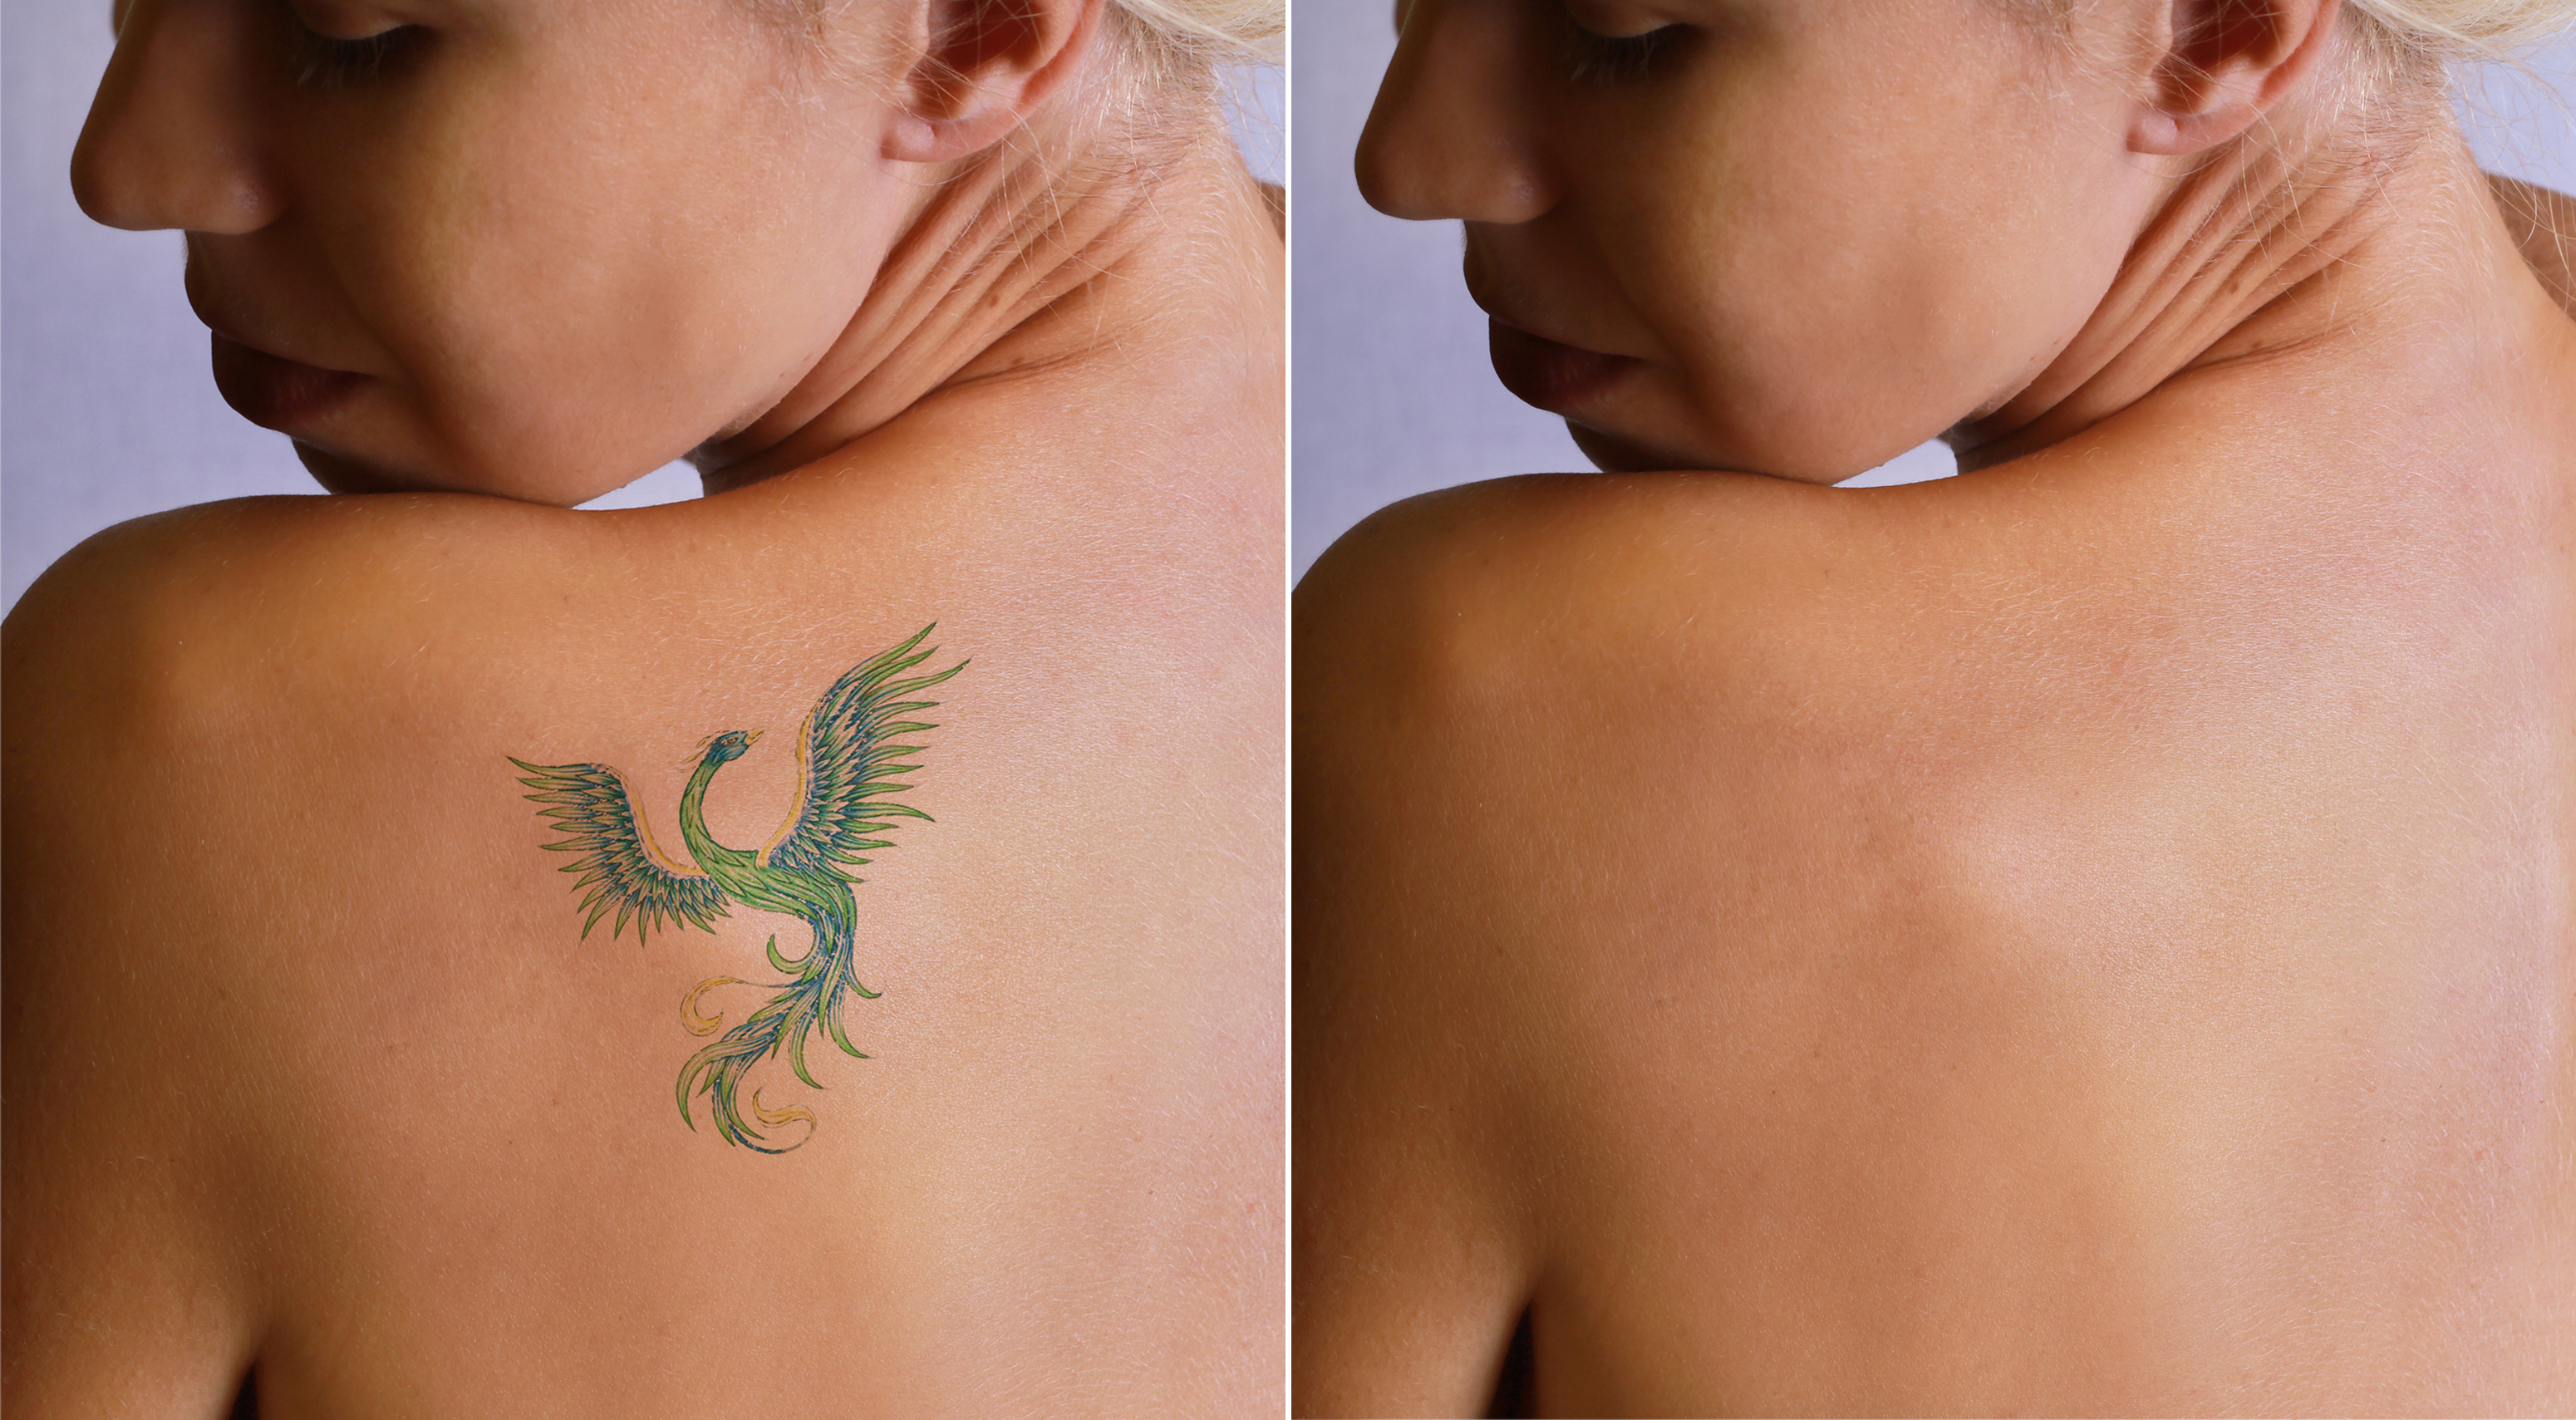 The Tattoo Removal PlaceThe Tattoo ...thetattooremovalplace.com